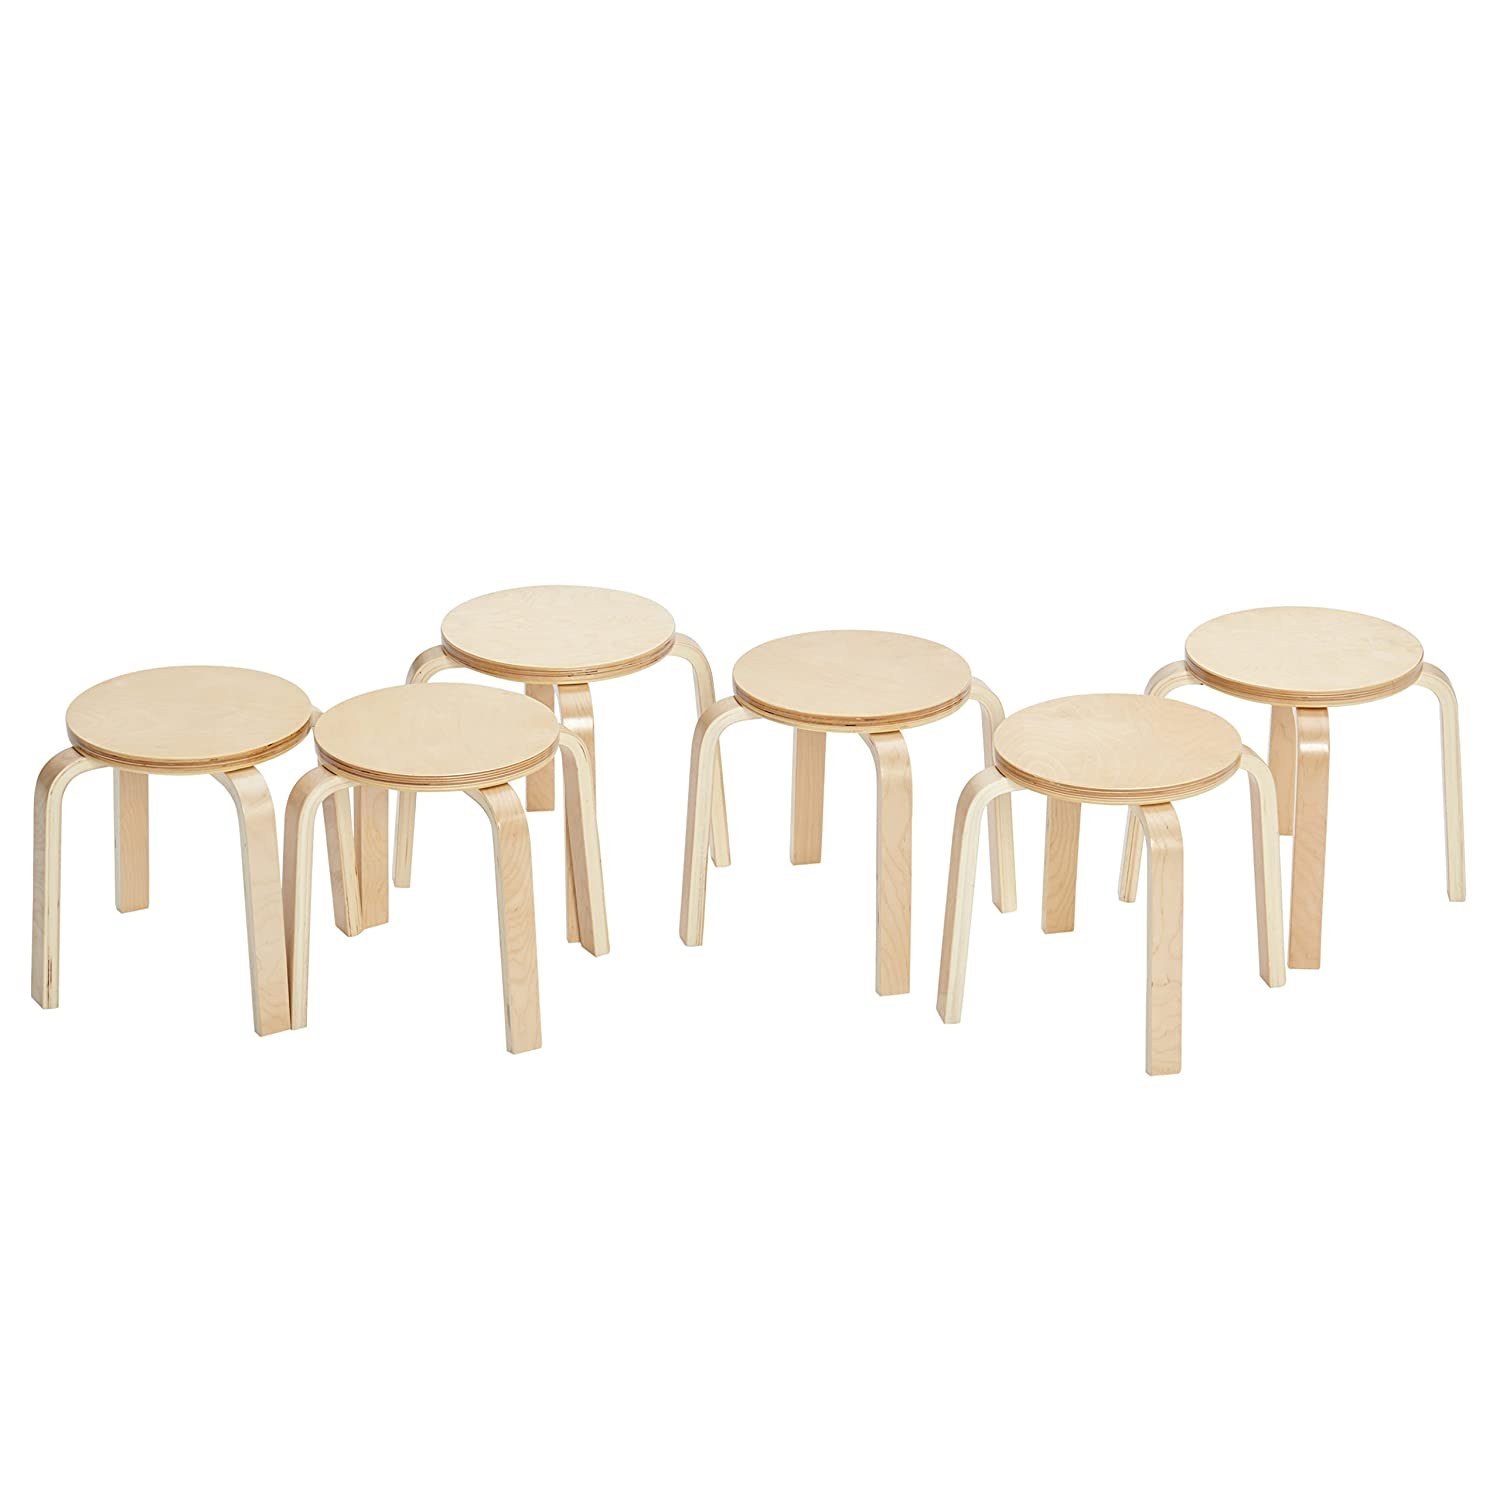 Excellent Ecr4Kids Bentwood Stacking Stools For Kids 12 H Natural Beatyapartments Chair Design Images Beatyapartmentscom